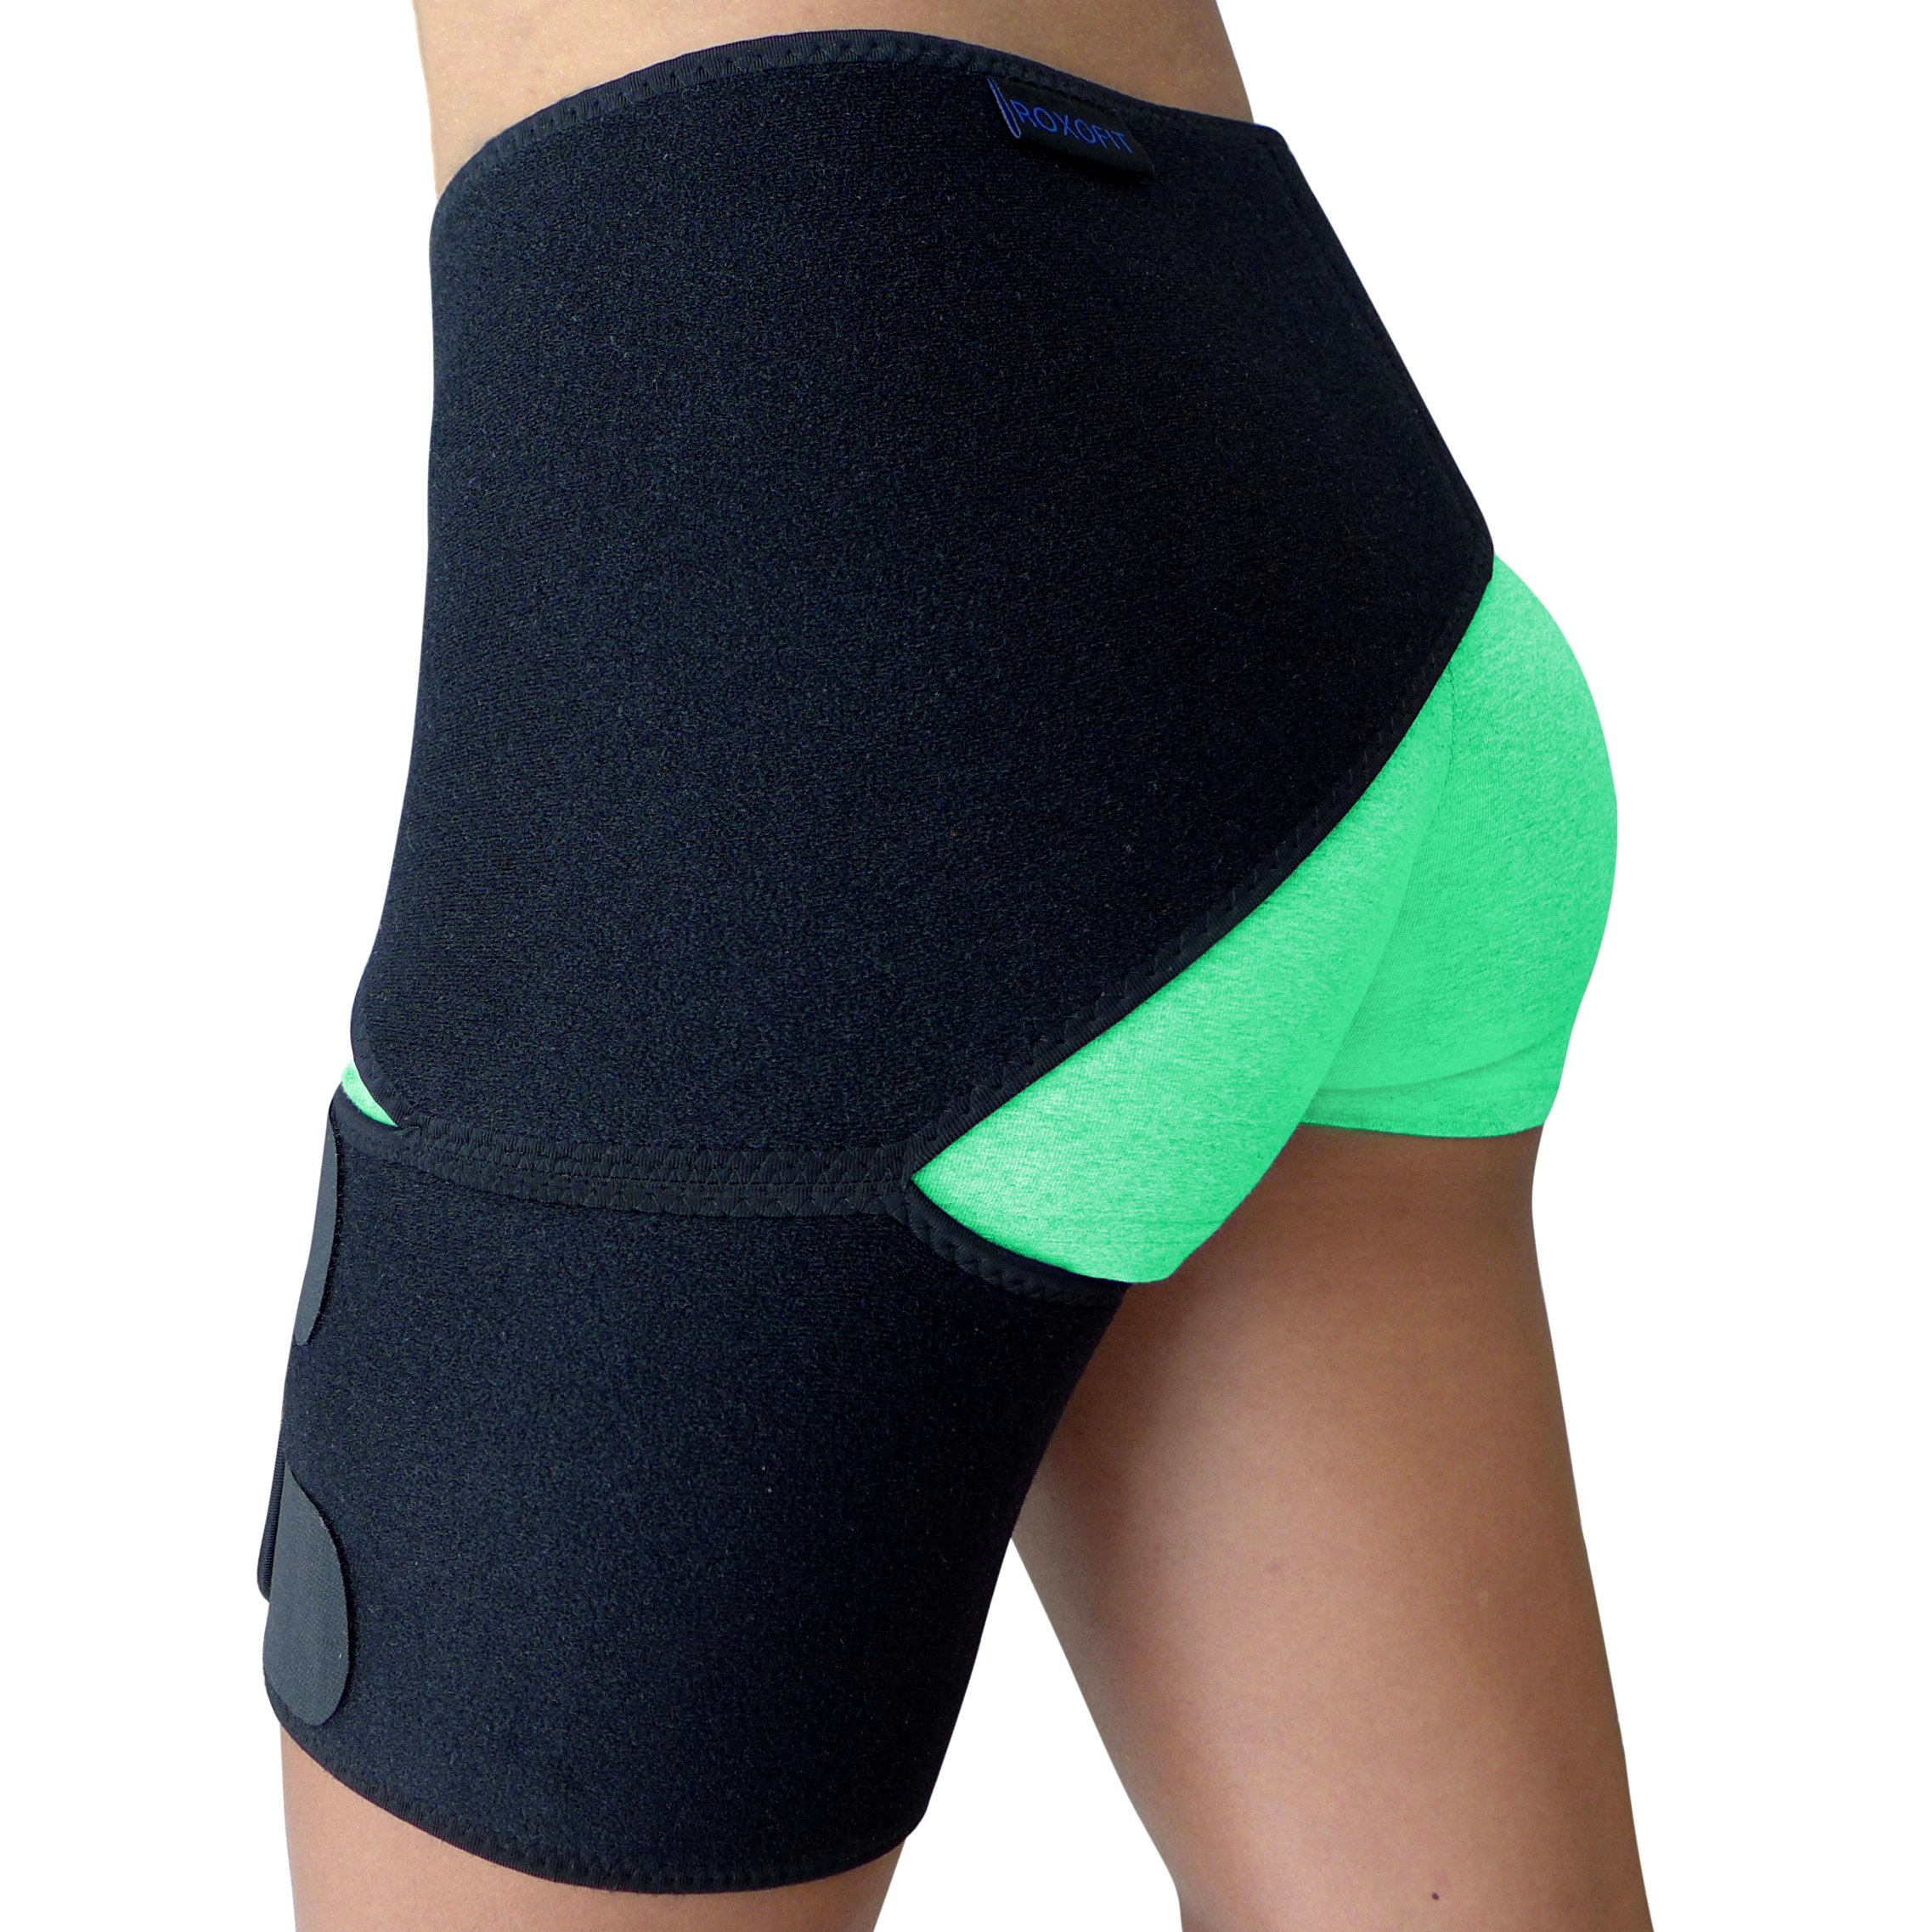 Groin Support - Hip Brace for Sciatica Pain Relief, Thigh, Hamstring, Quadriceps, Hip Arthritis. Compression Groin Wrap for Pulled Muscles, Hip Joint Pain. Sciatica brace / SI belt for Men, Women by Roxofit